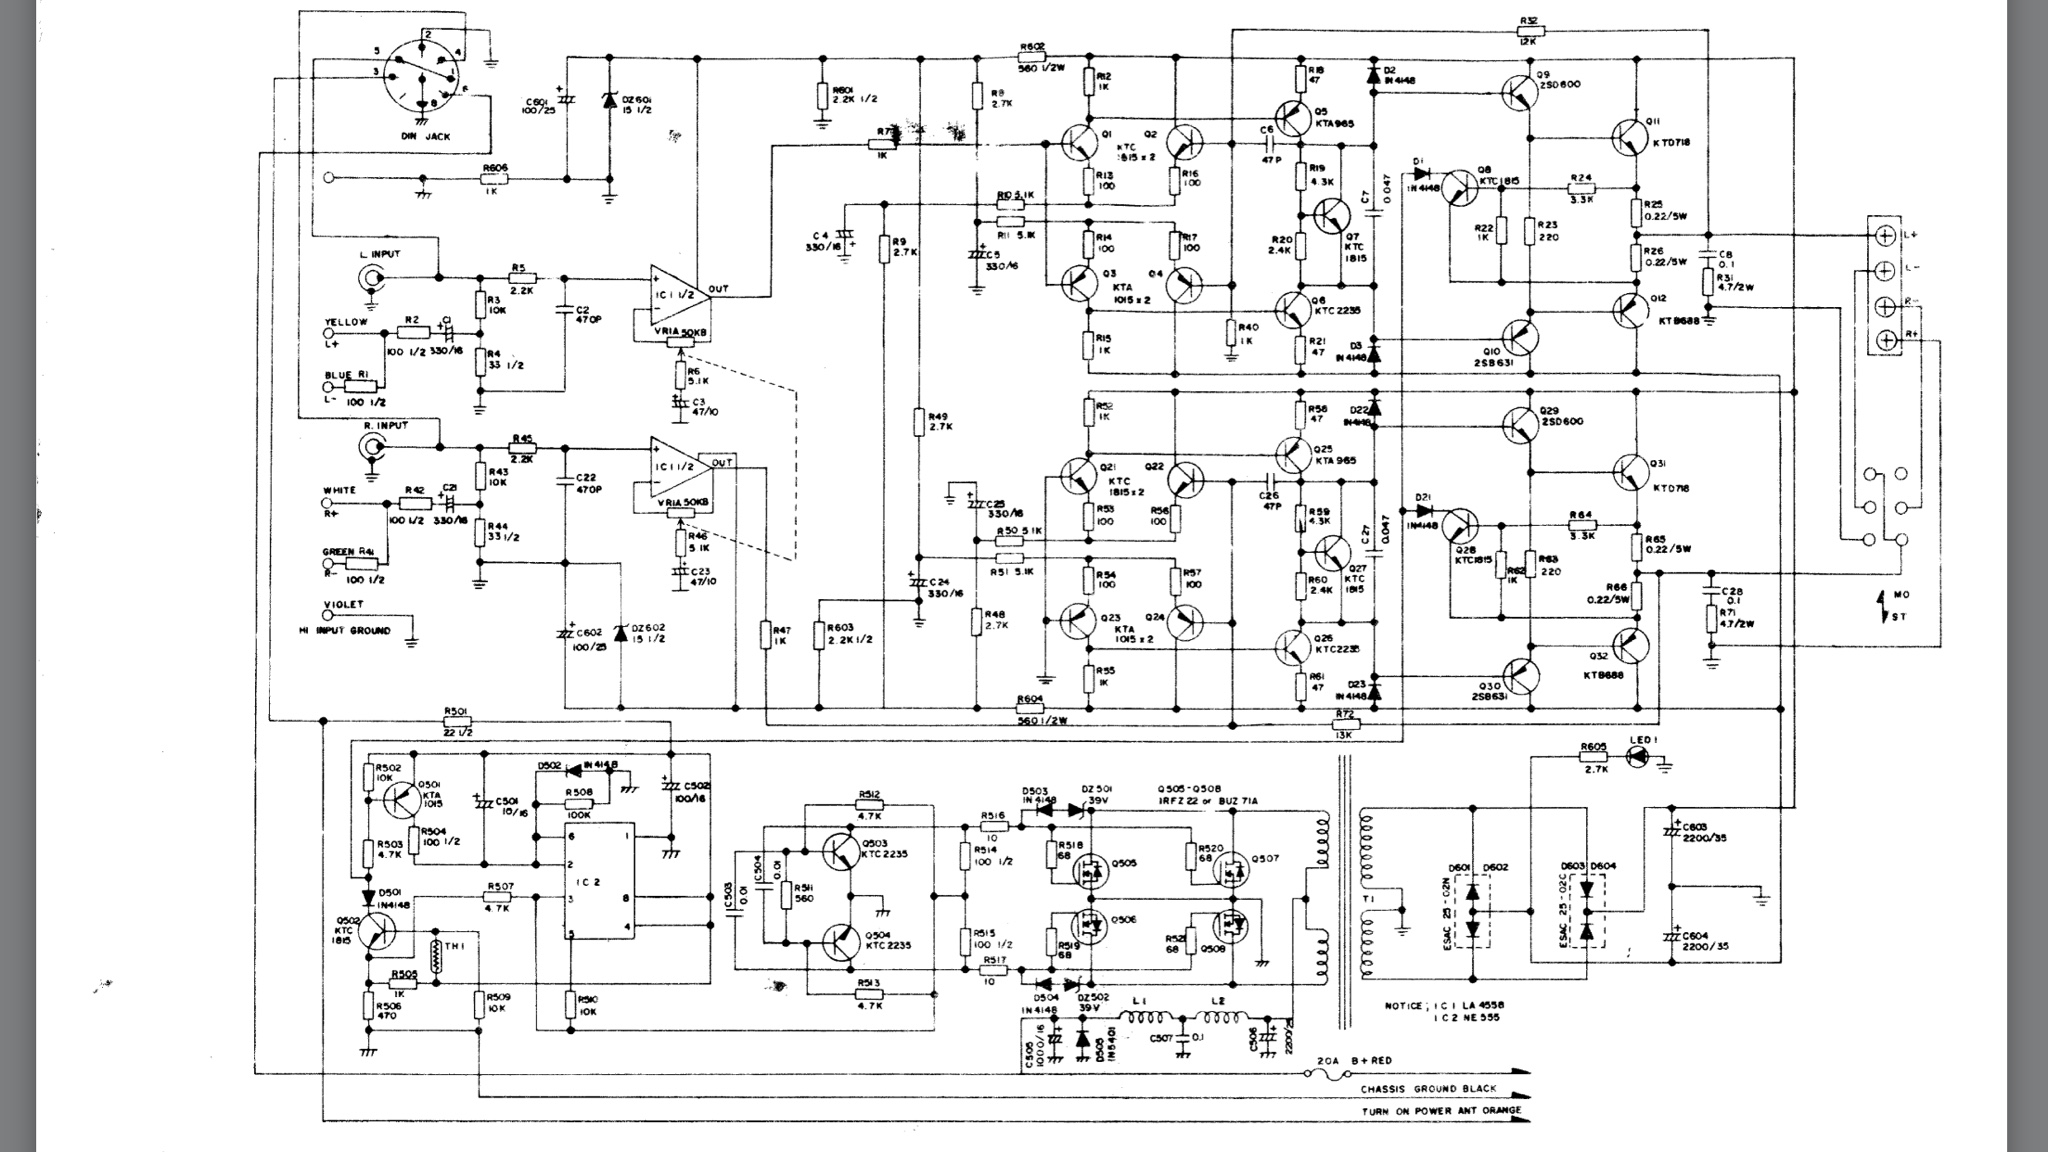 Trying To Modify My Pyramid Pb 300g I Have The Schematics